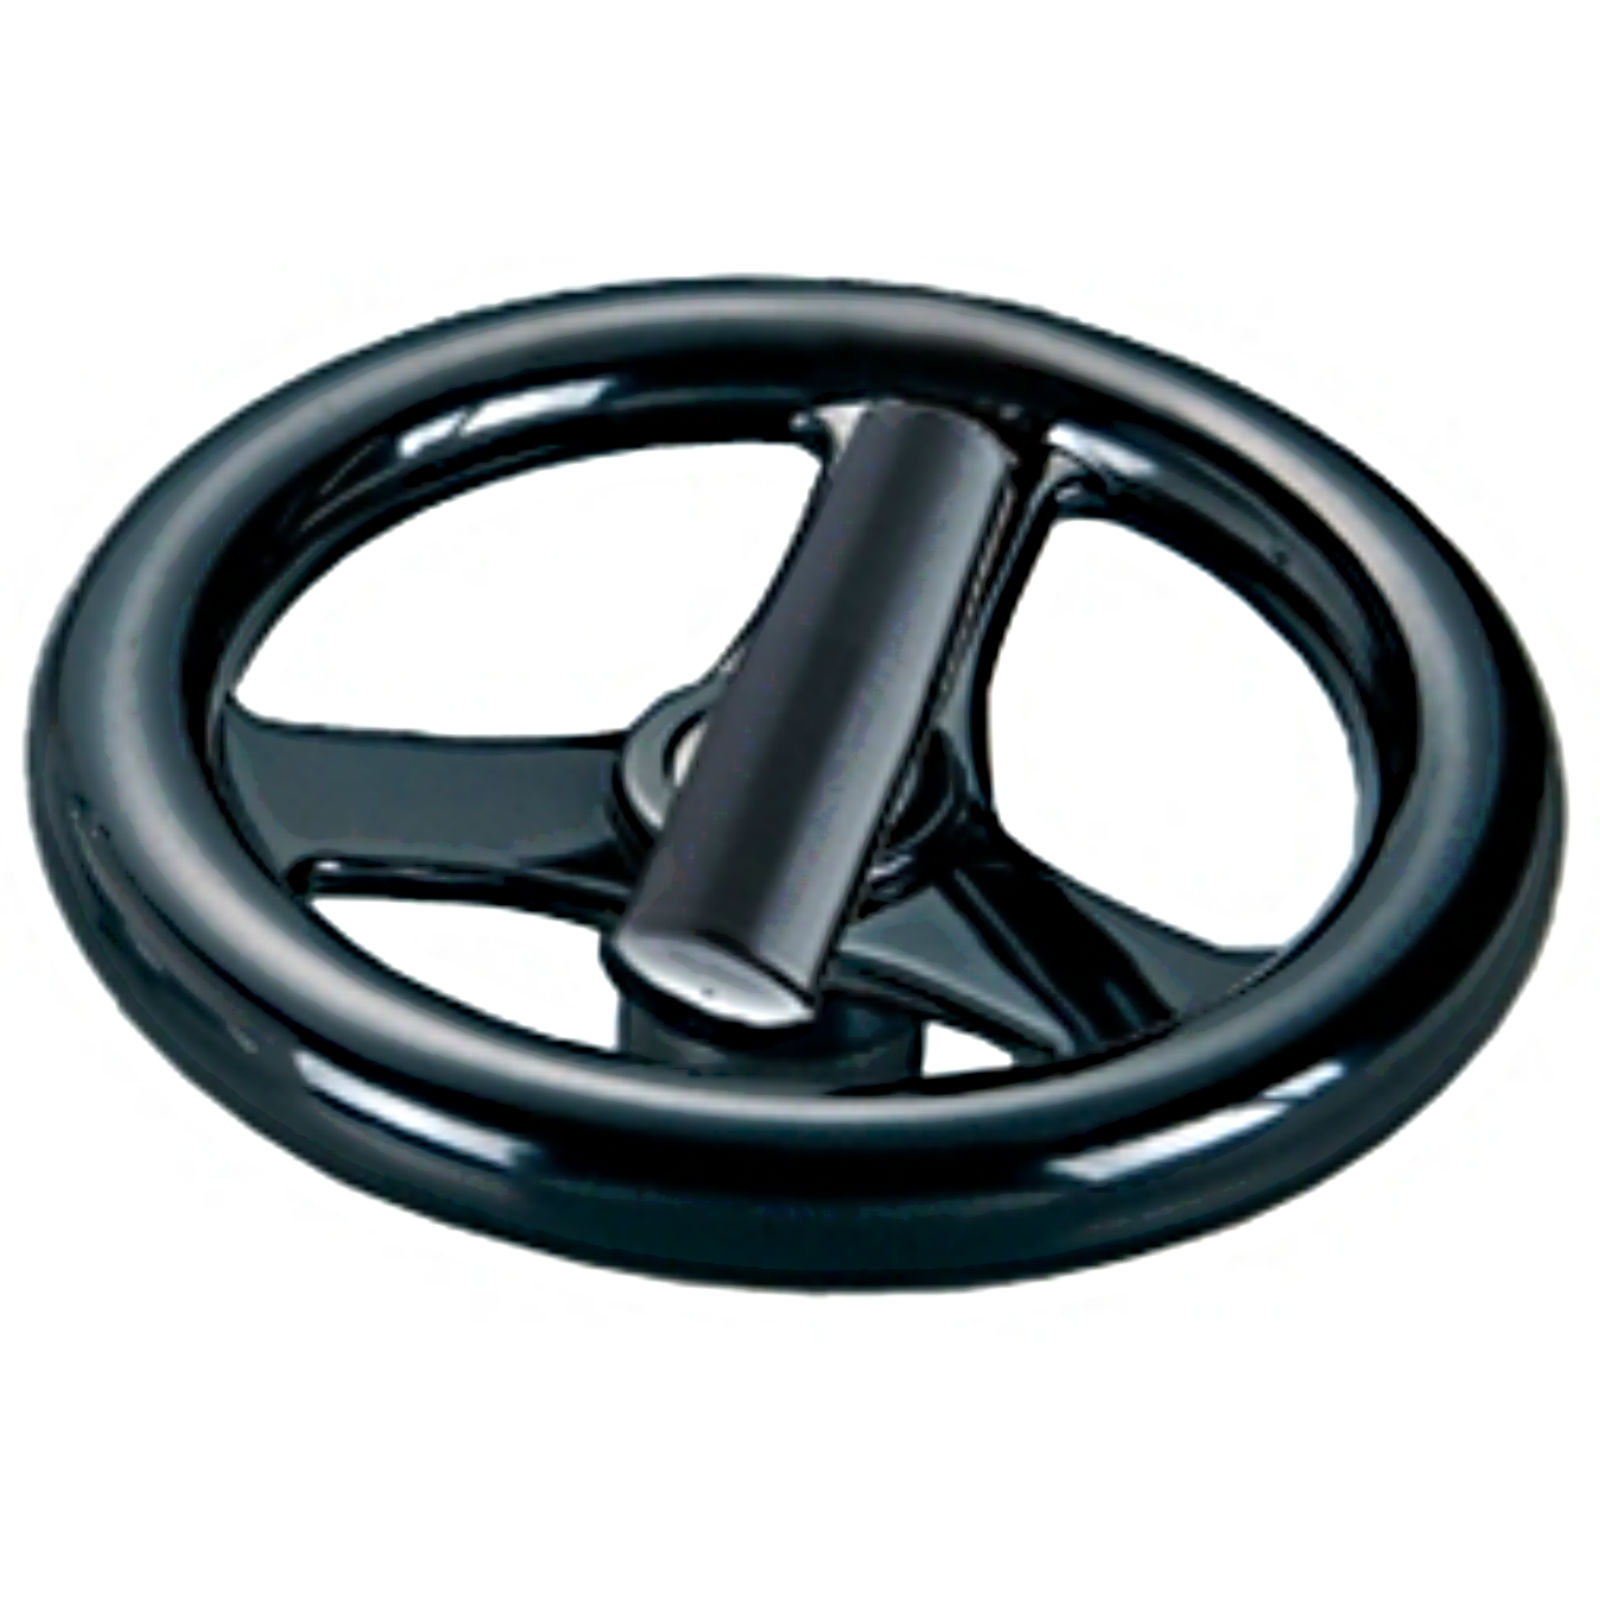 A phenolic 3-spoke handwheel with a folding handle